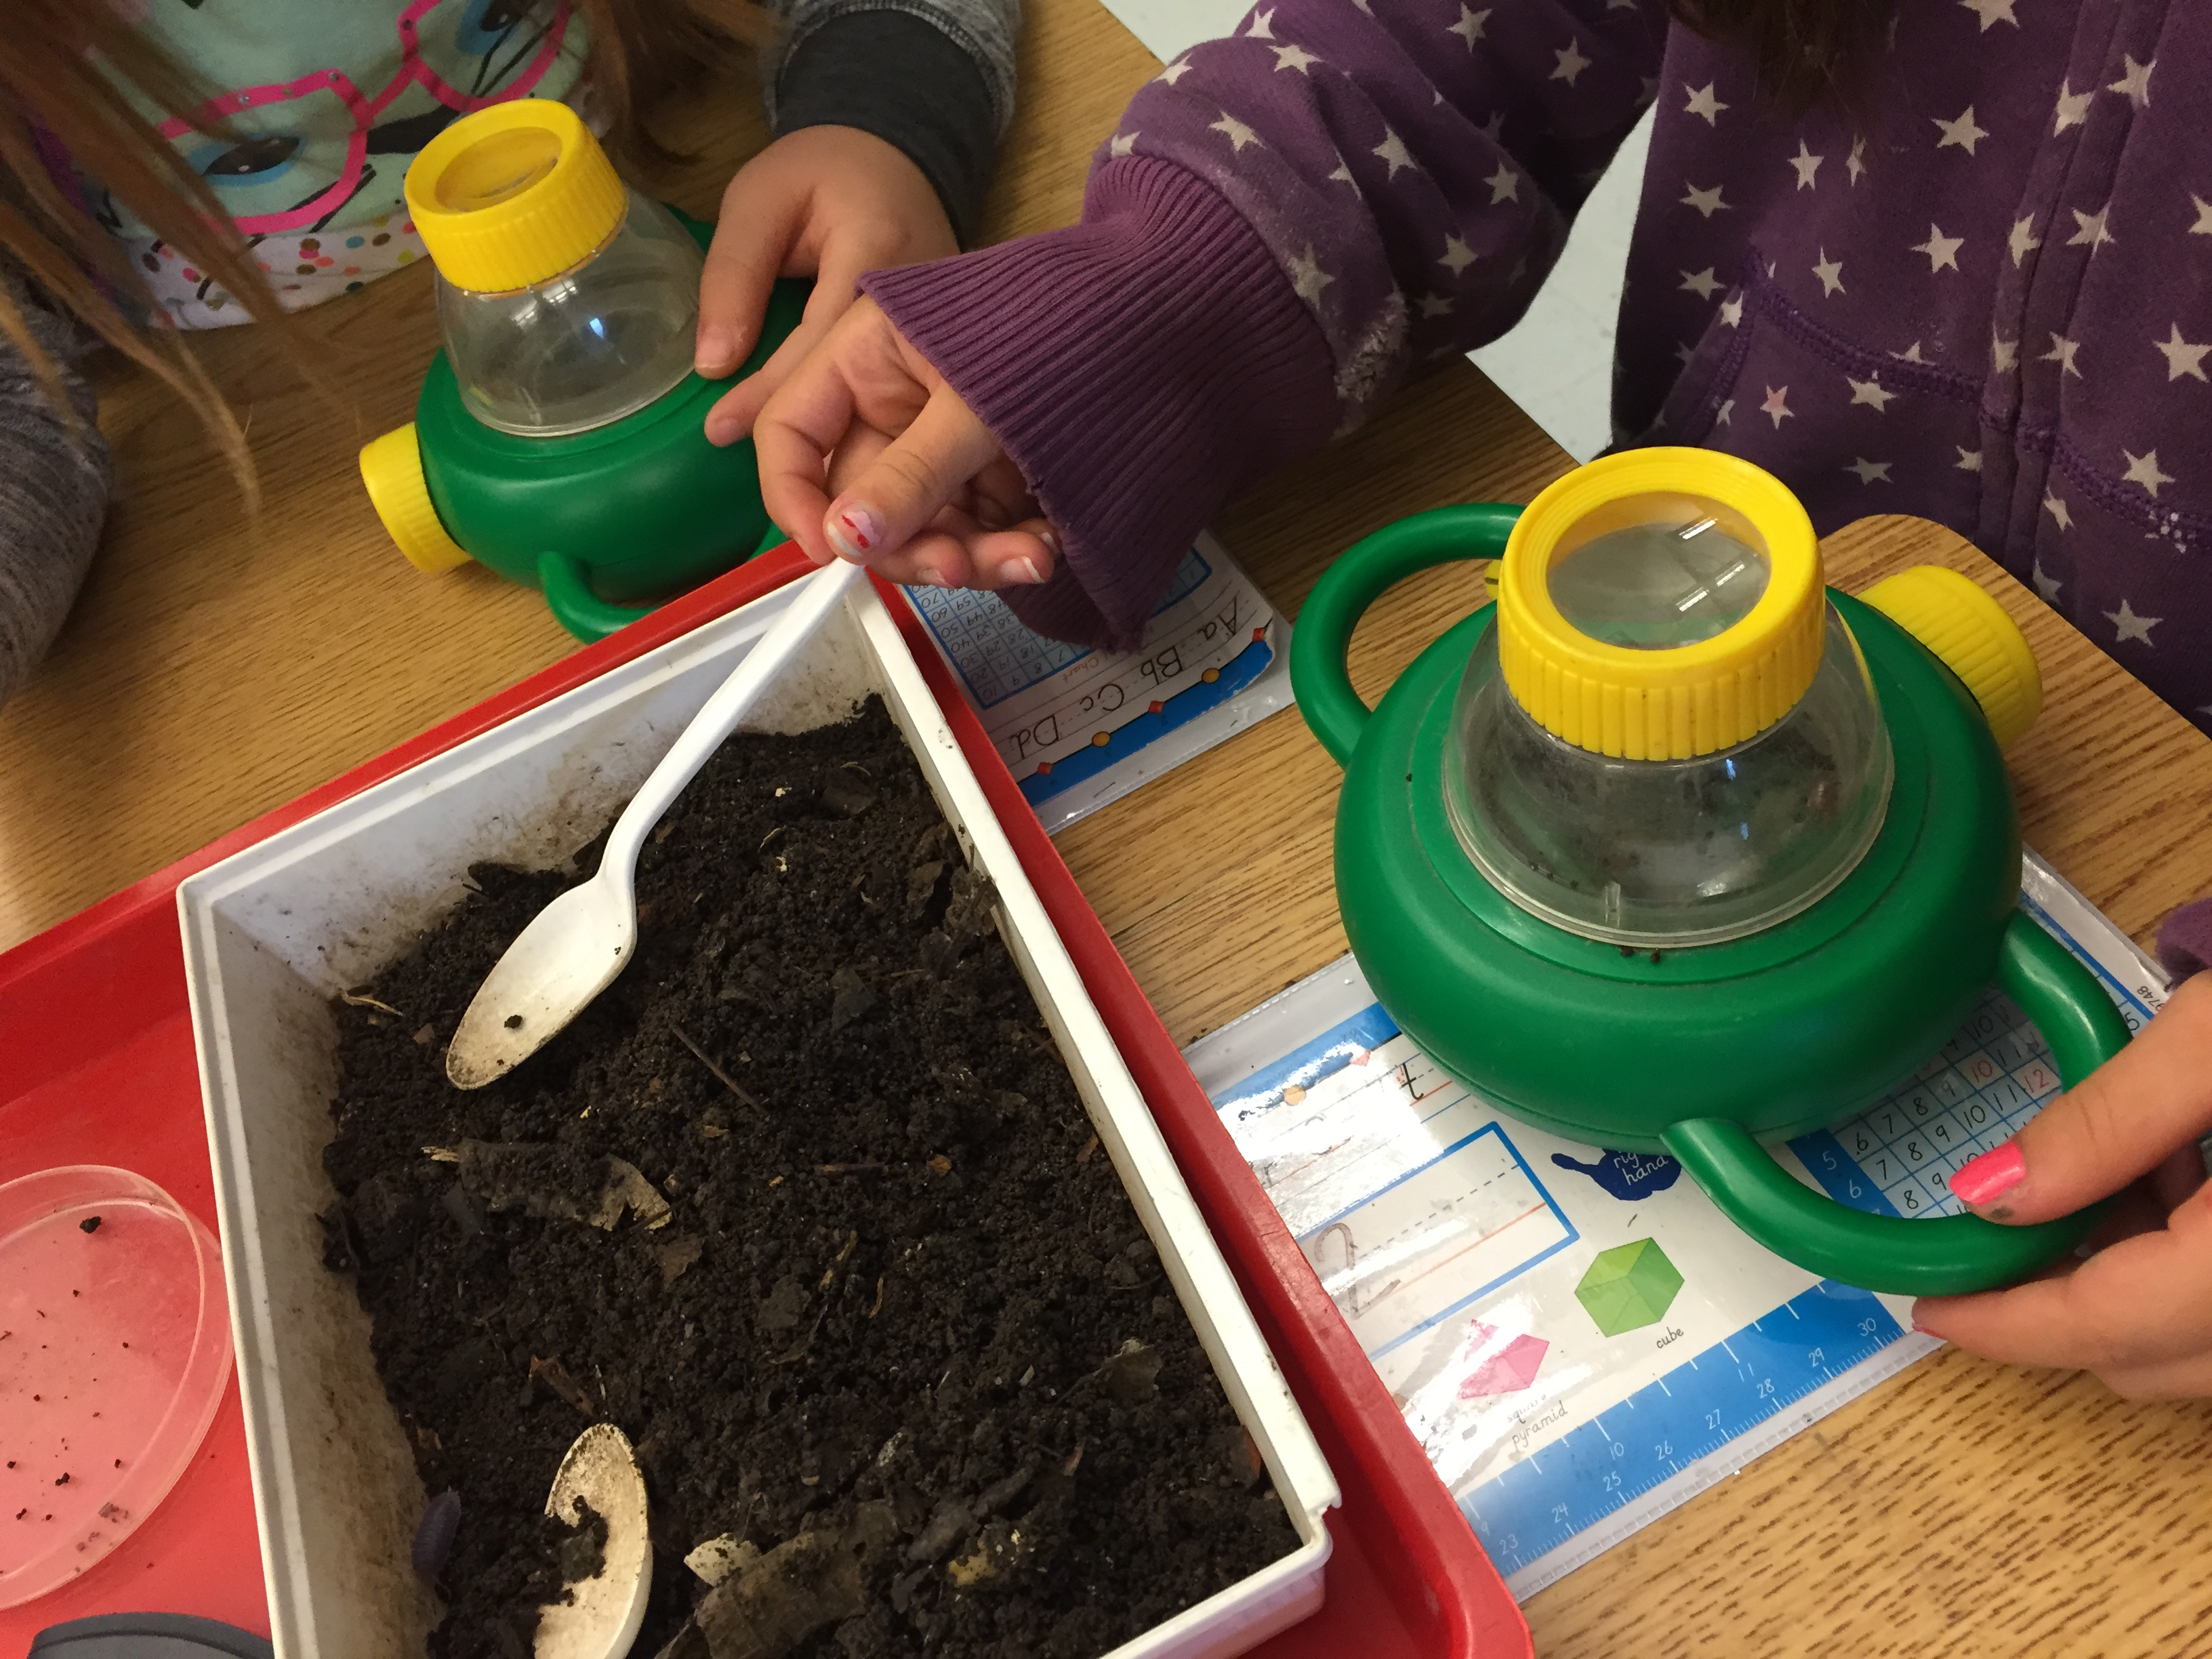 Students investigate soil and learn about composting in our Natural Science Classroom